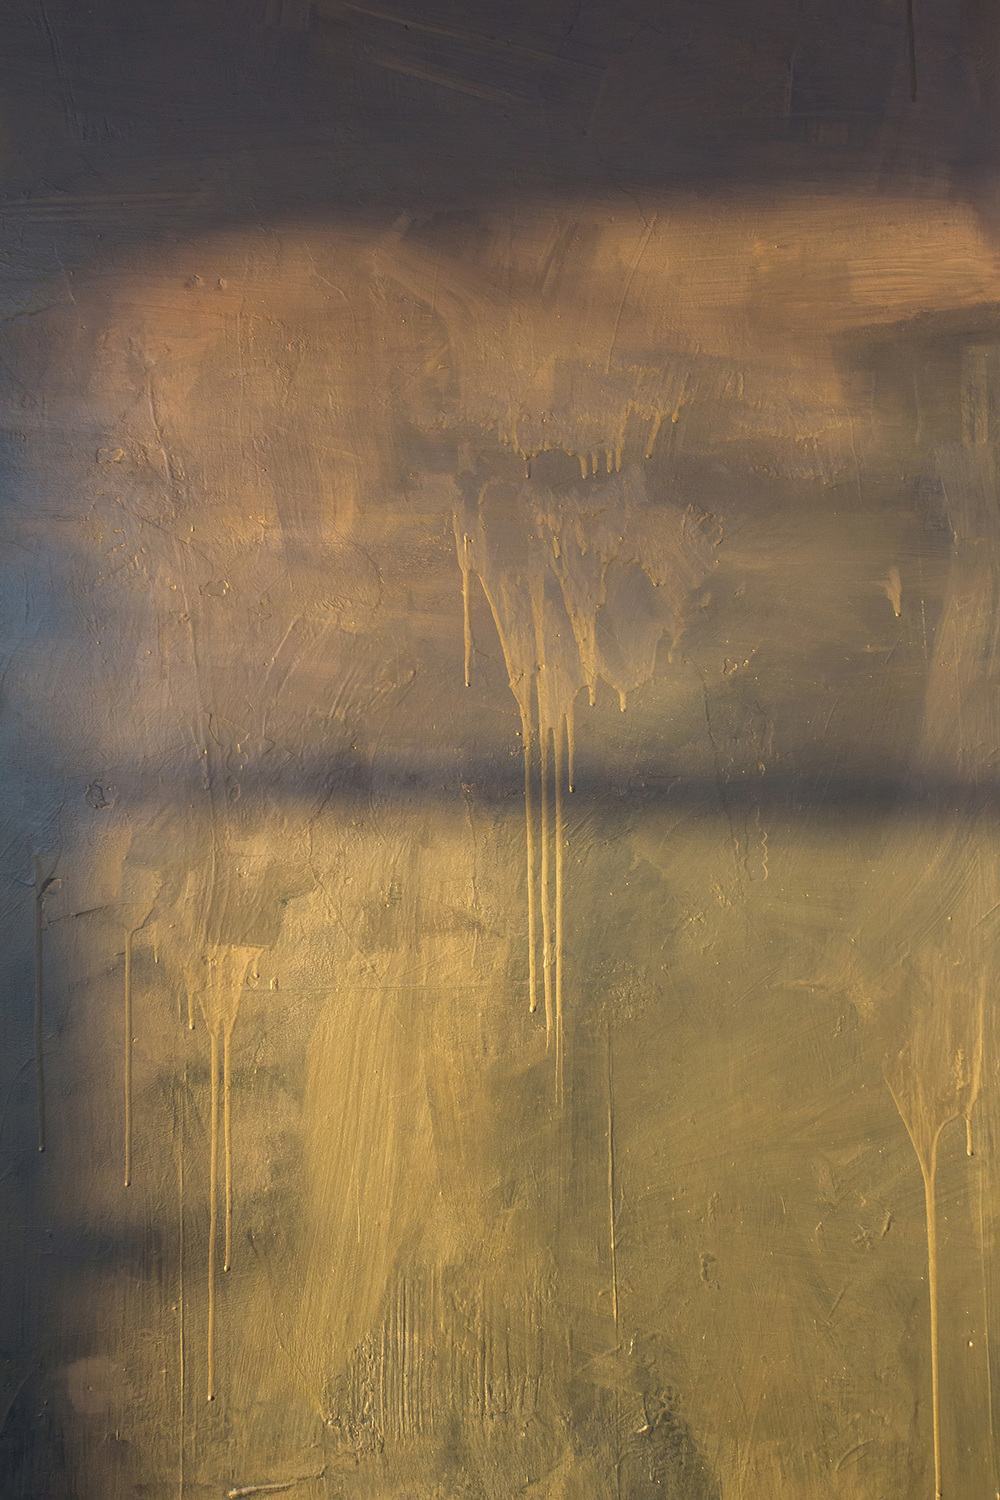 Warm sunlight lights detail of abstract contemporary painting, part of a large scale mural painted in a warehouse like tower, features metallic silver paint and shadows.